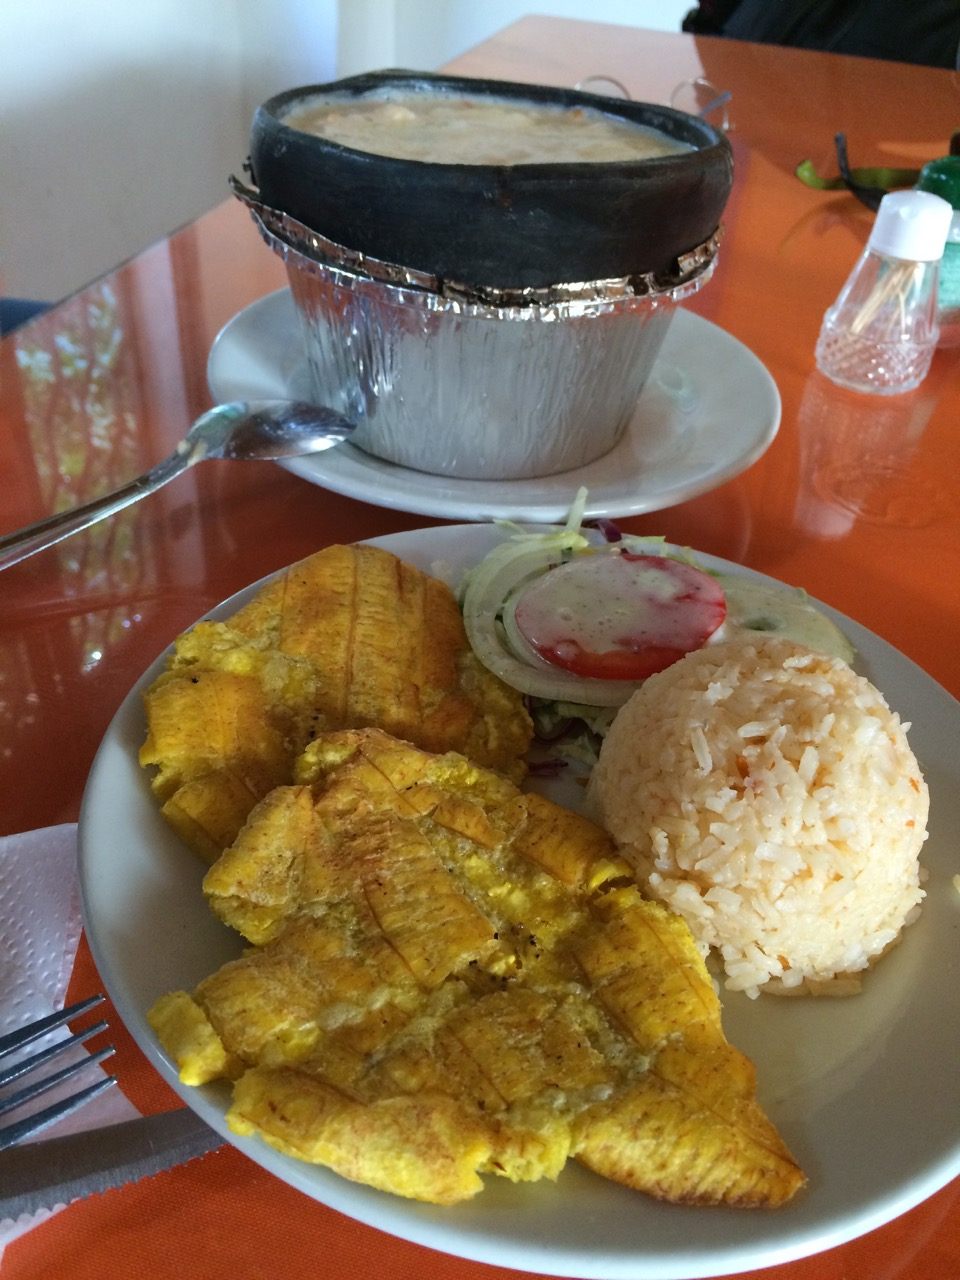 The cazuela de mariscos served with fried plantains